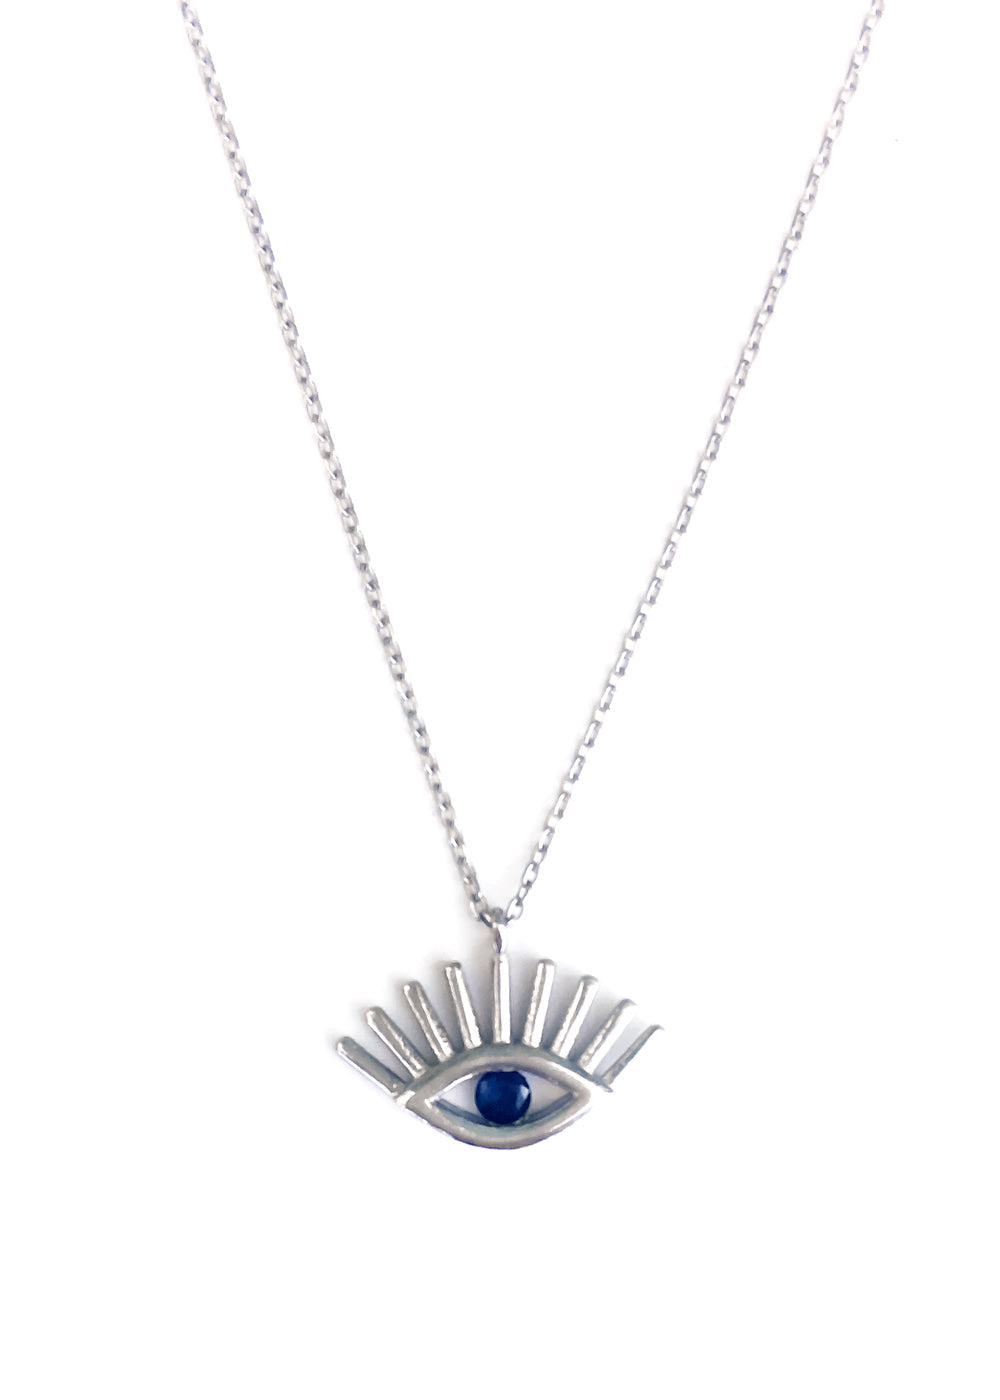 All Eyes On You Silver Necklace